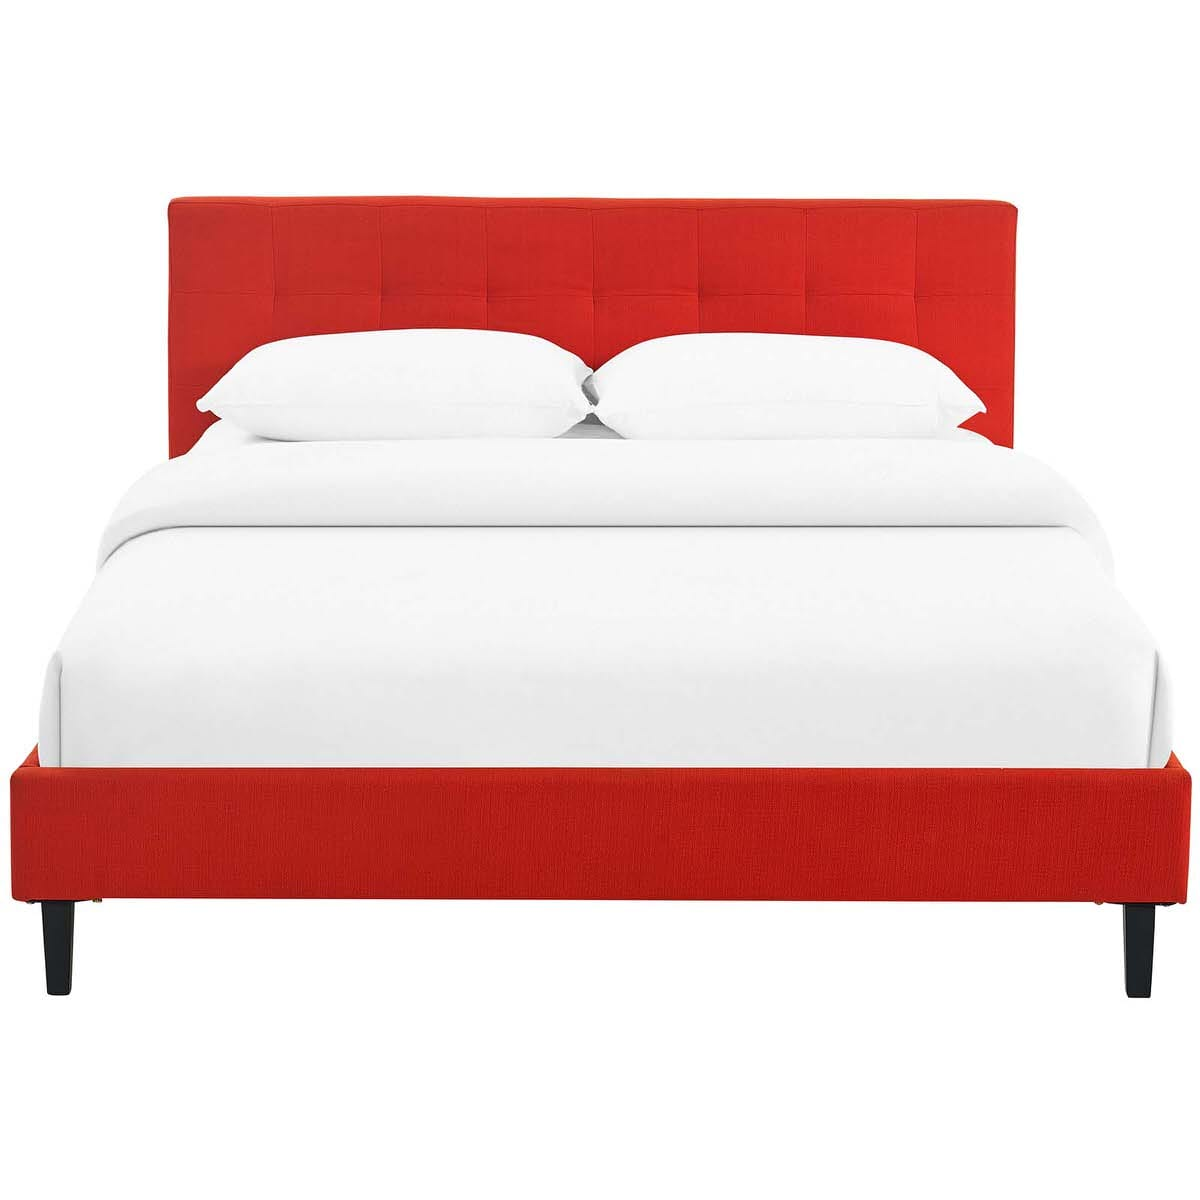 Linnea Full Bed Atomic Red by Modern Living